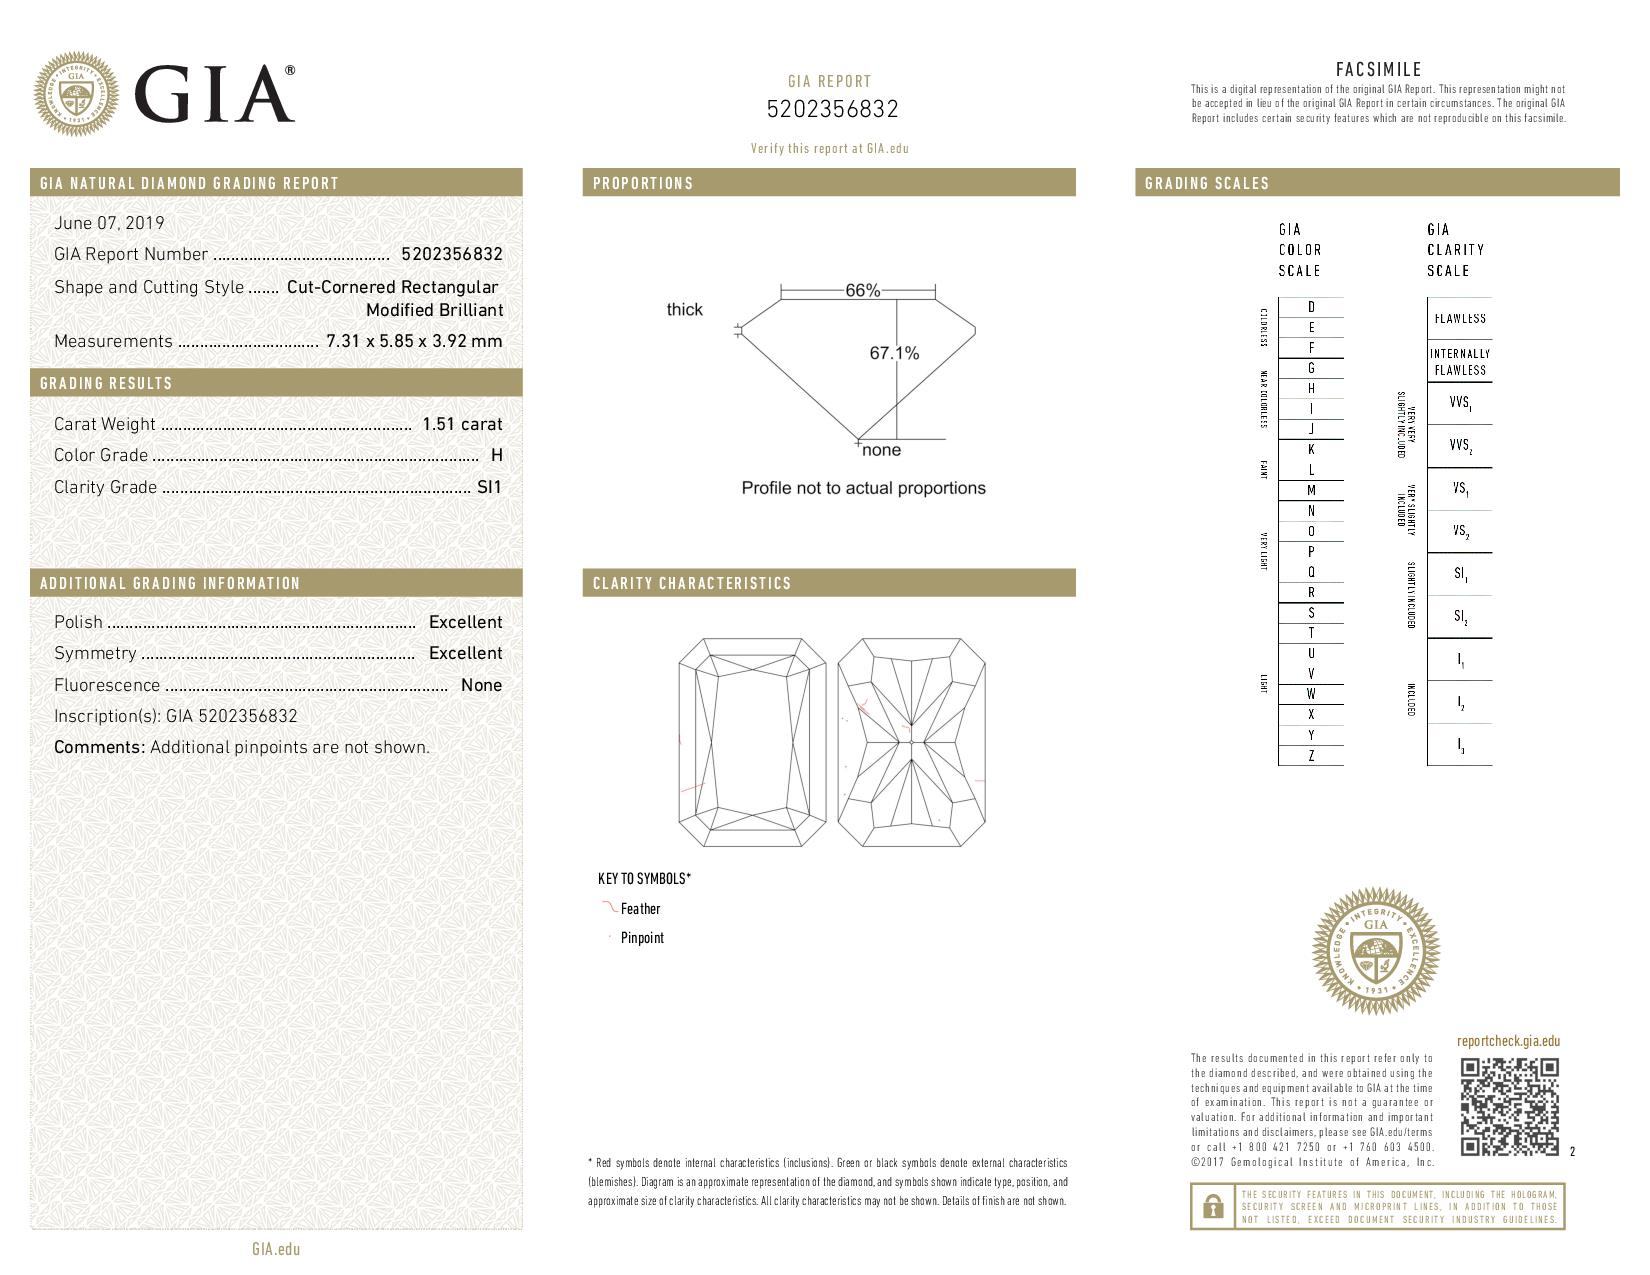 This is a 1.51 carat radiant shape, H color, SI1 clarity natural diamond accompanied by a GIA grading report.